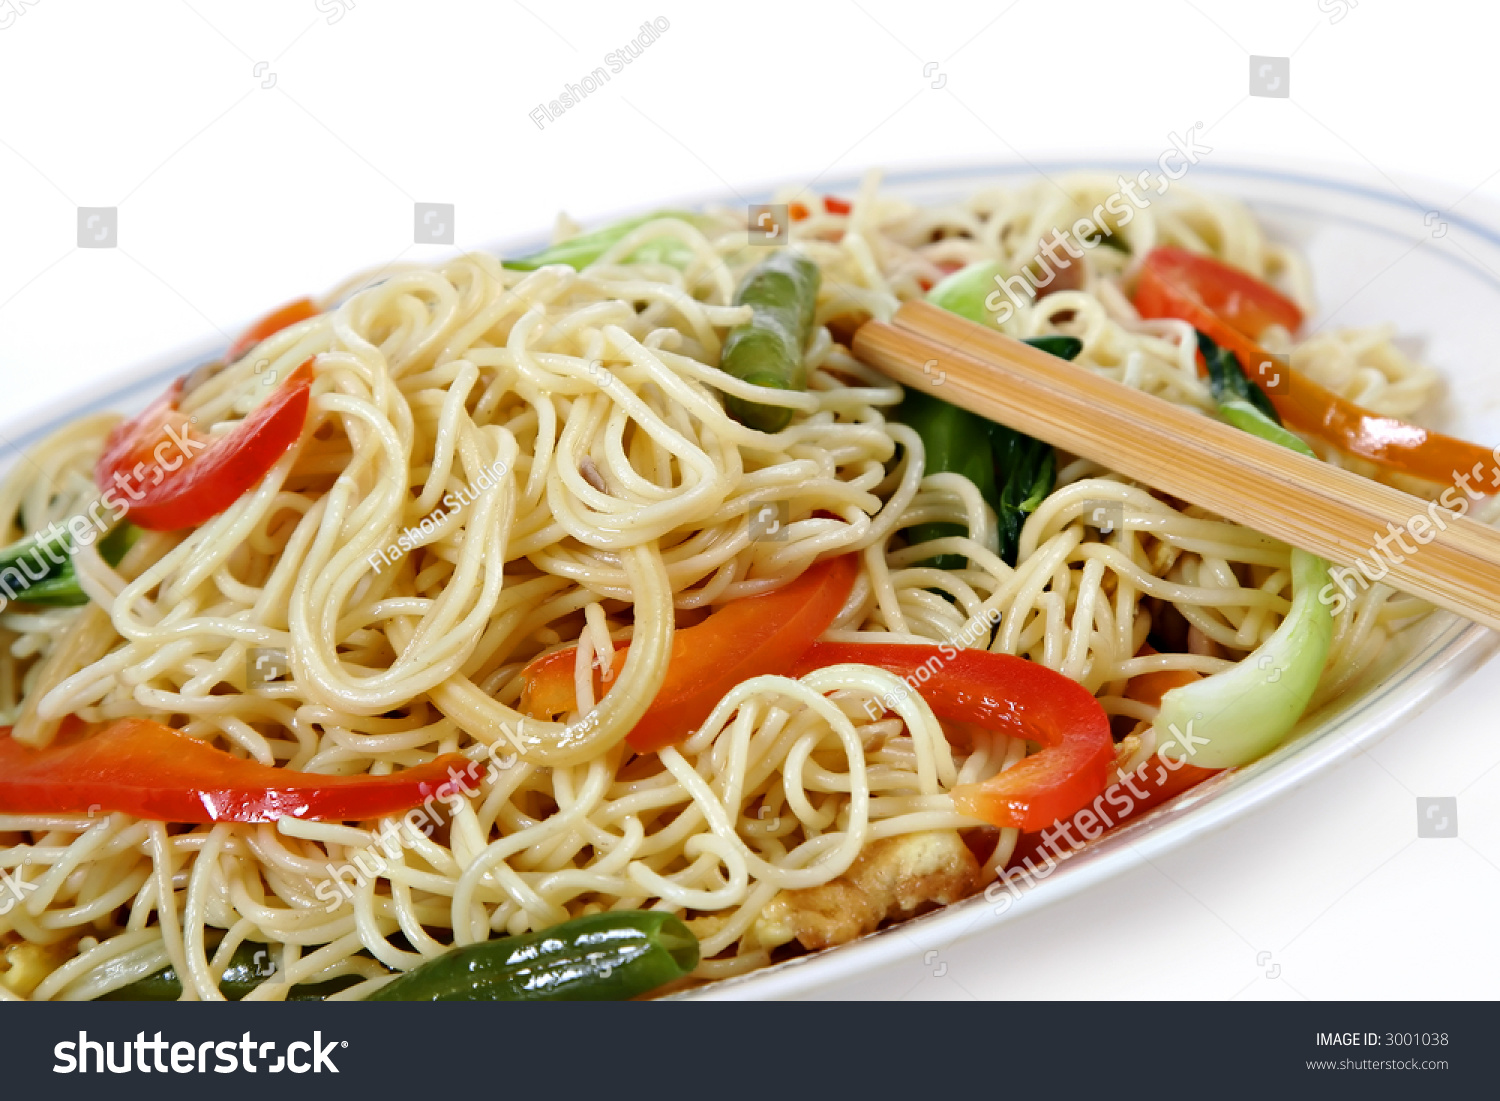 Vegetable Stir Fry Noodles, Traditional Chinese Dish Stock Photo ...